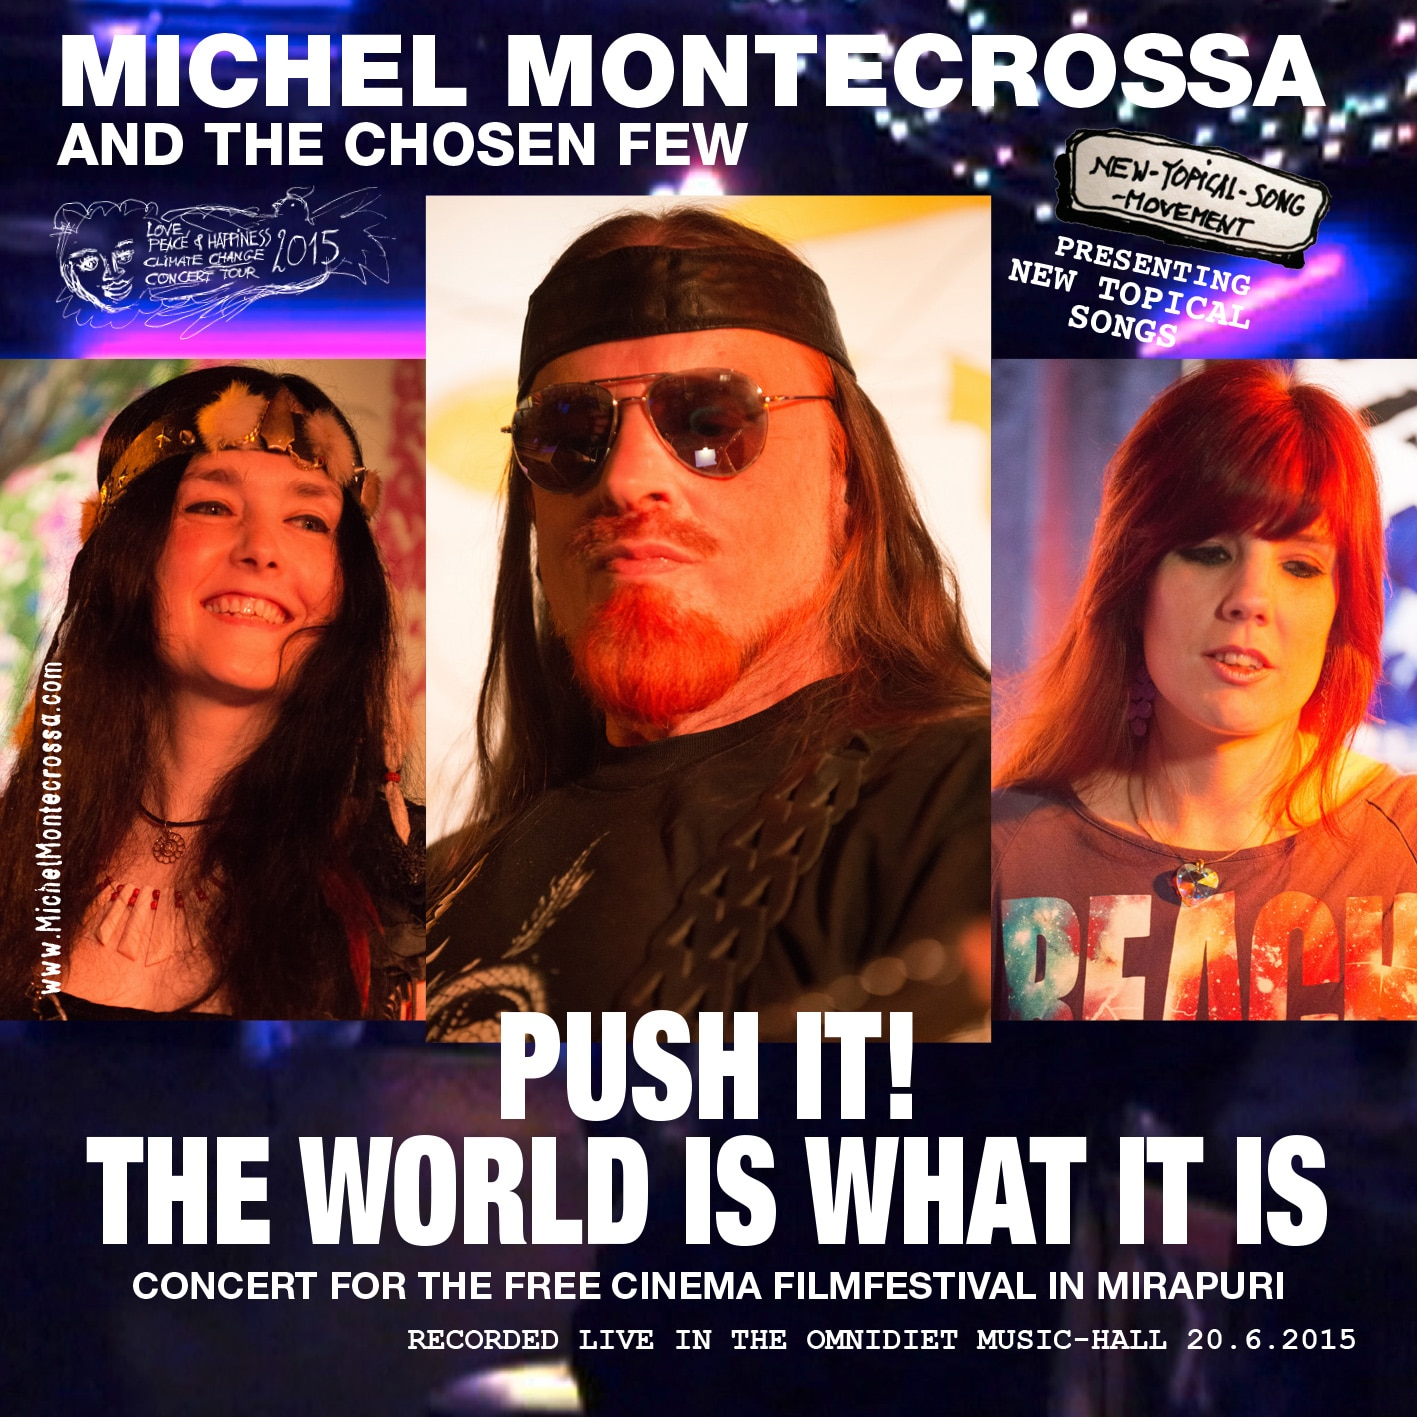 Push It! The World Is What It Is Concert